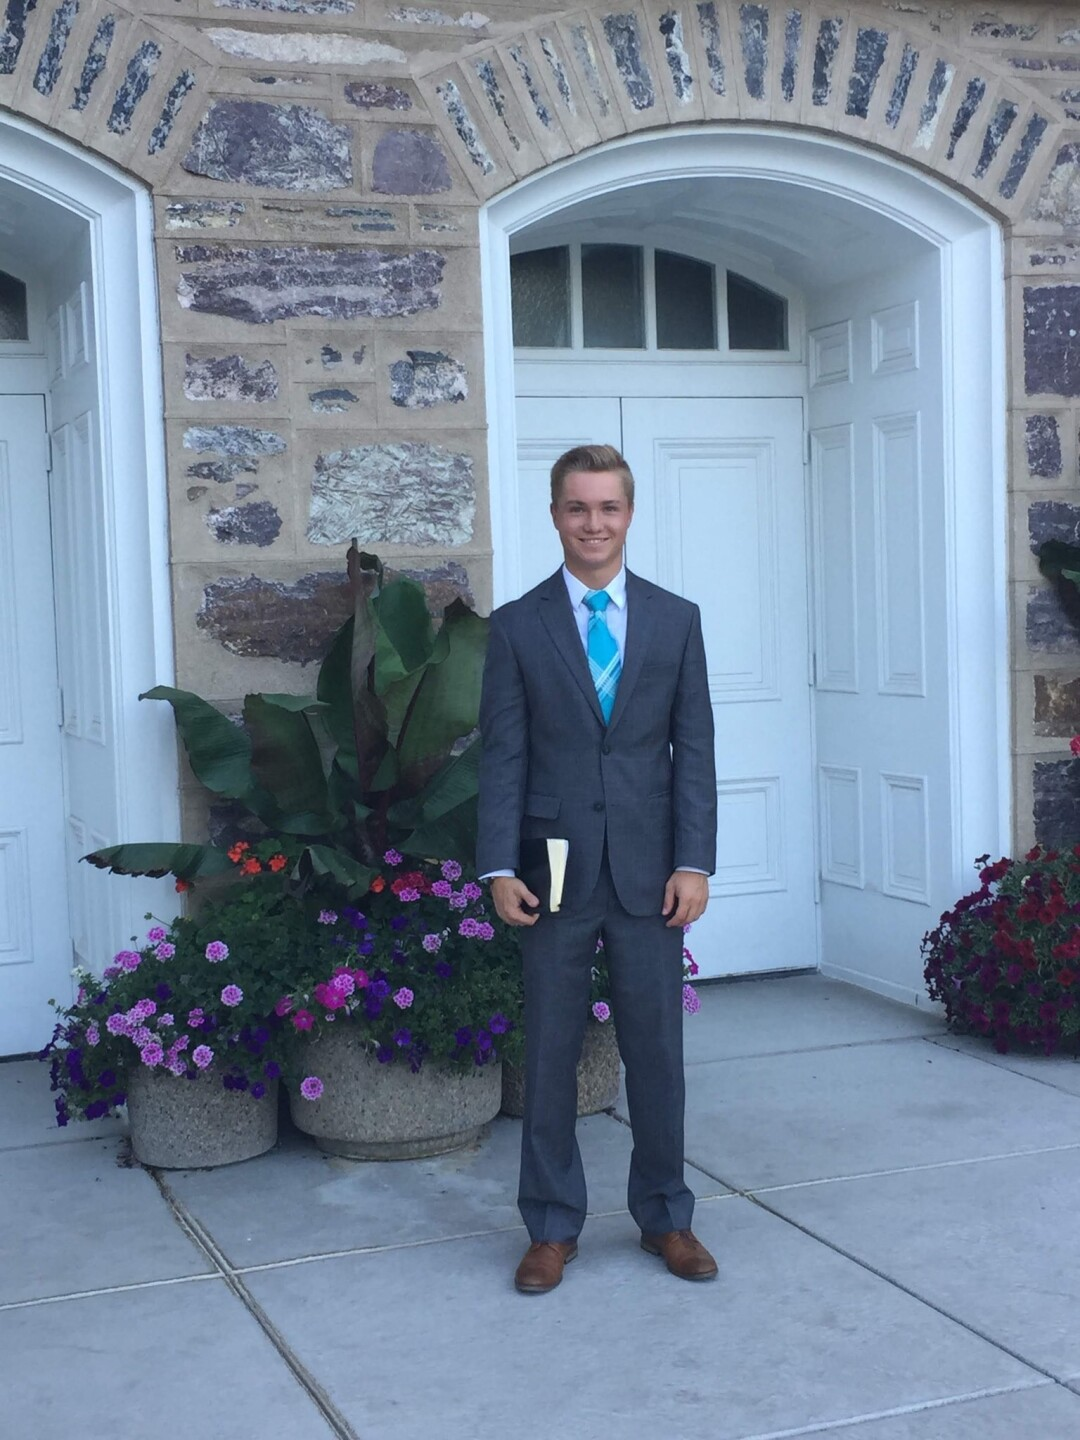 Photos: LDS missionary from Utah dies while serving in the Dominican Republic